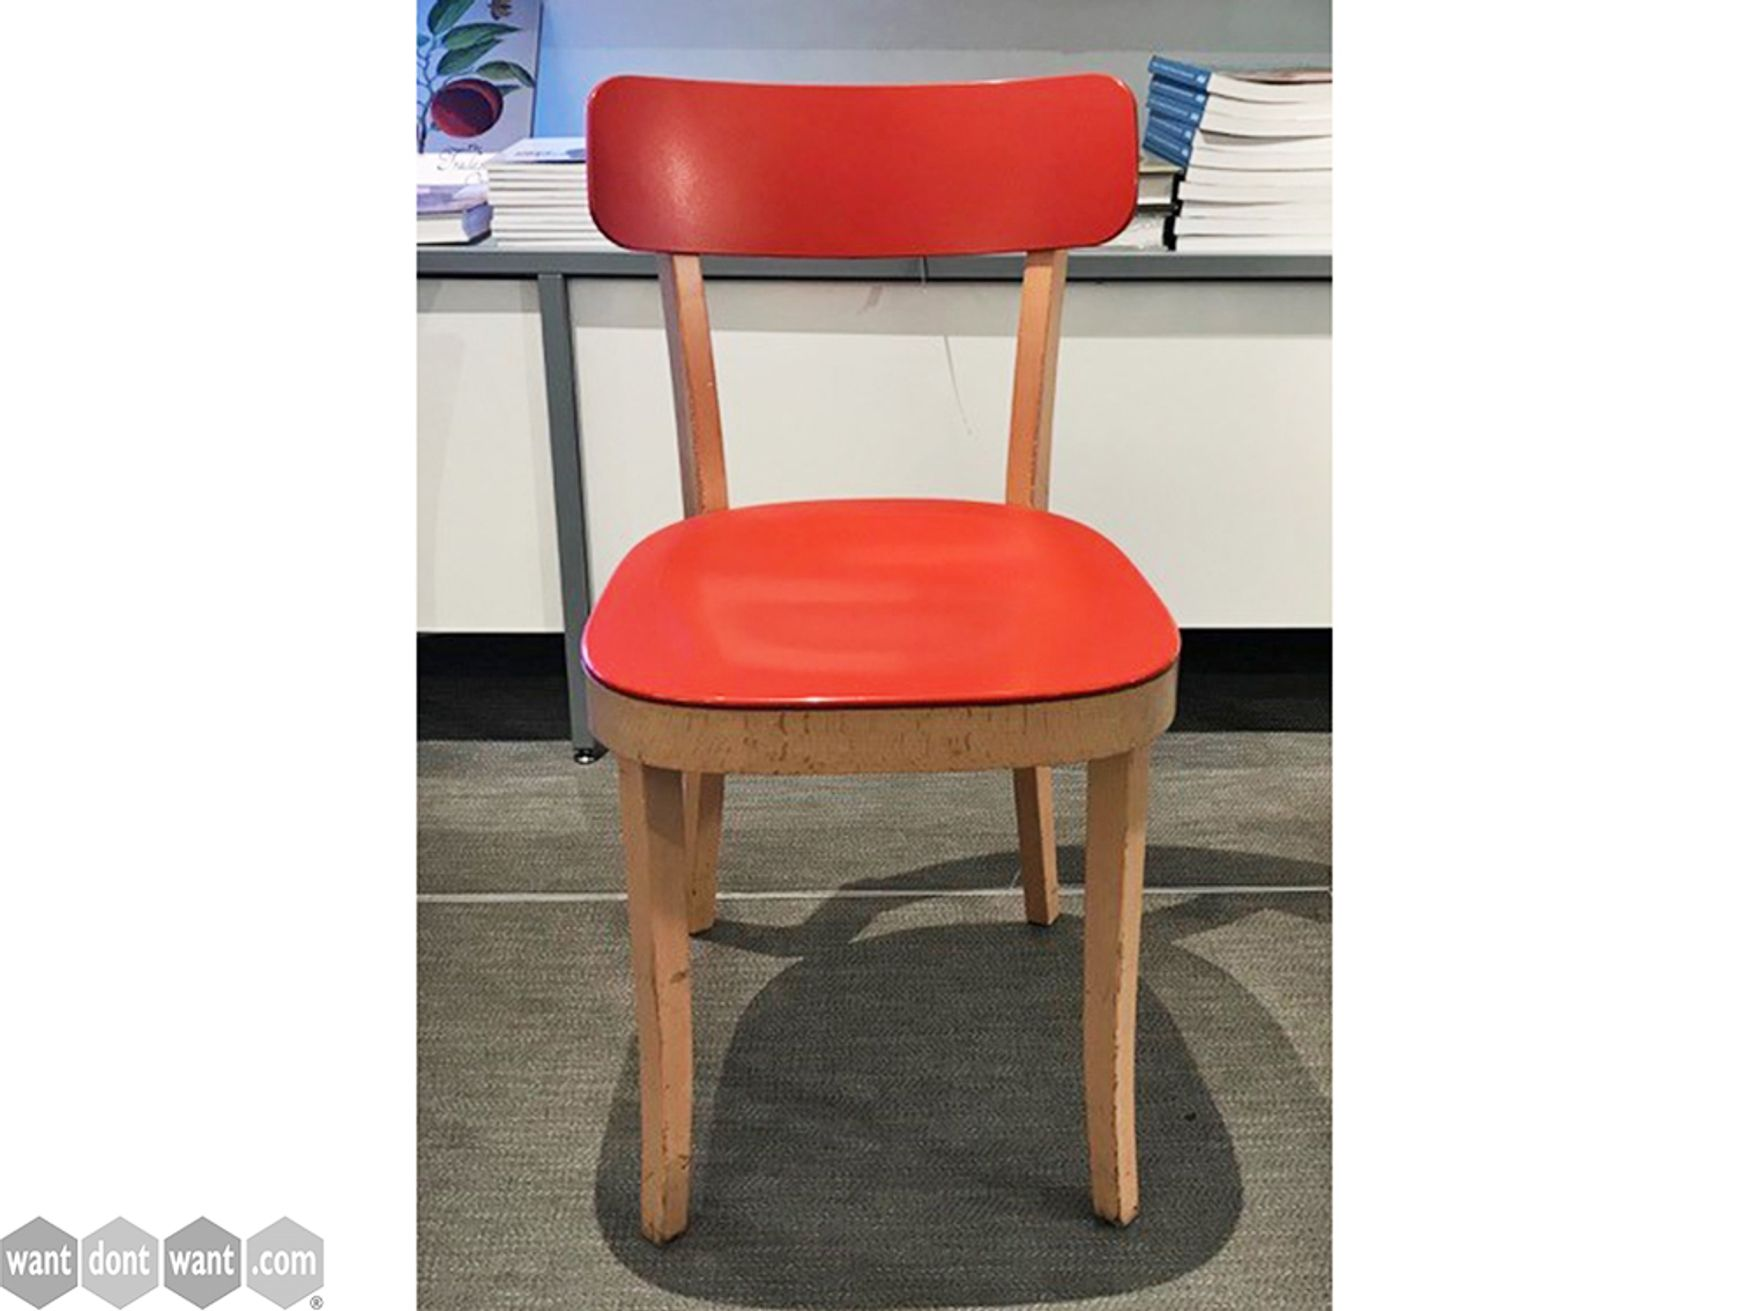 Used Basel Chairs Designed by Jasper Morrison